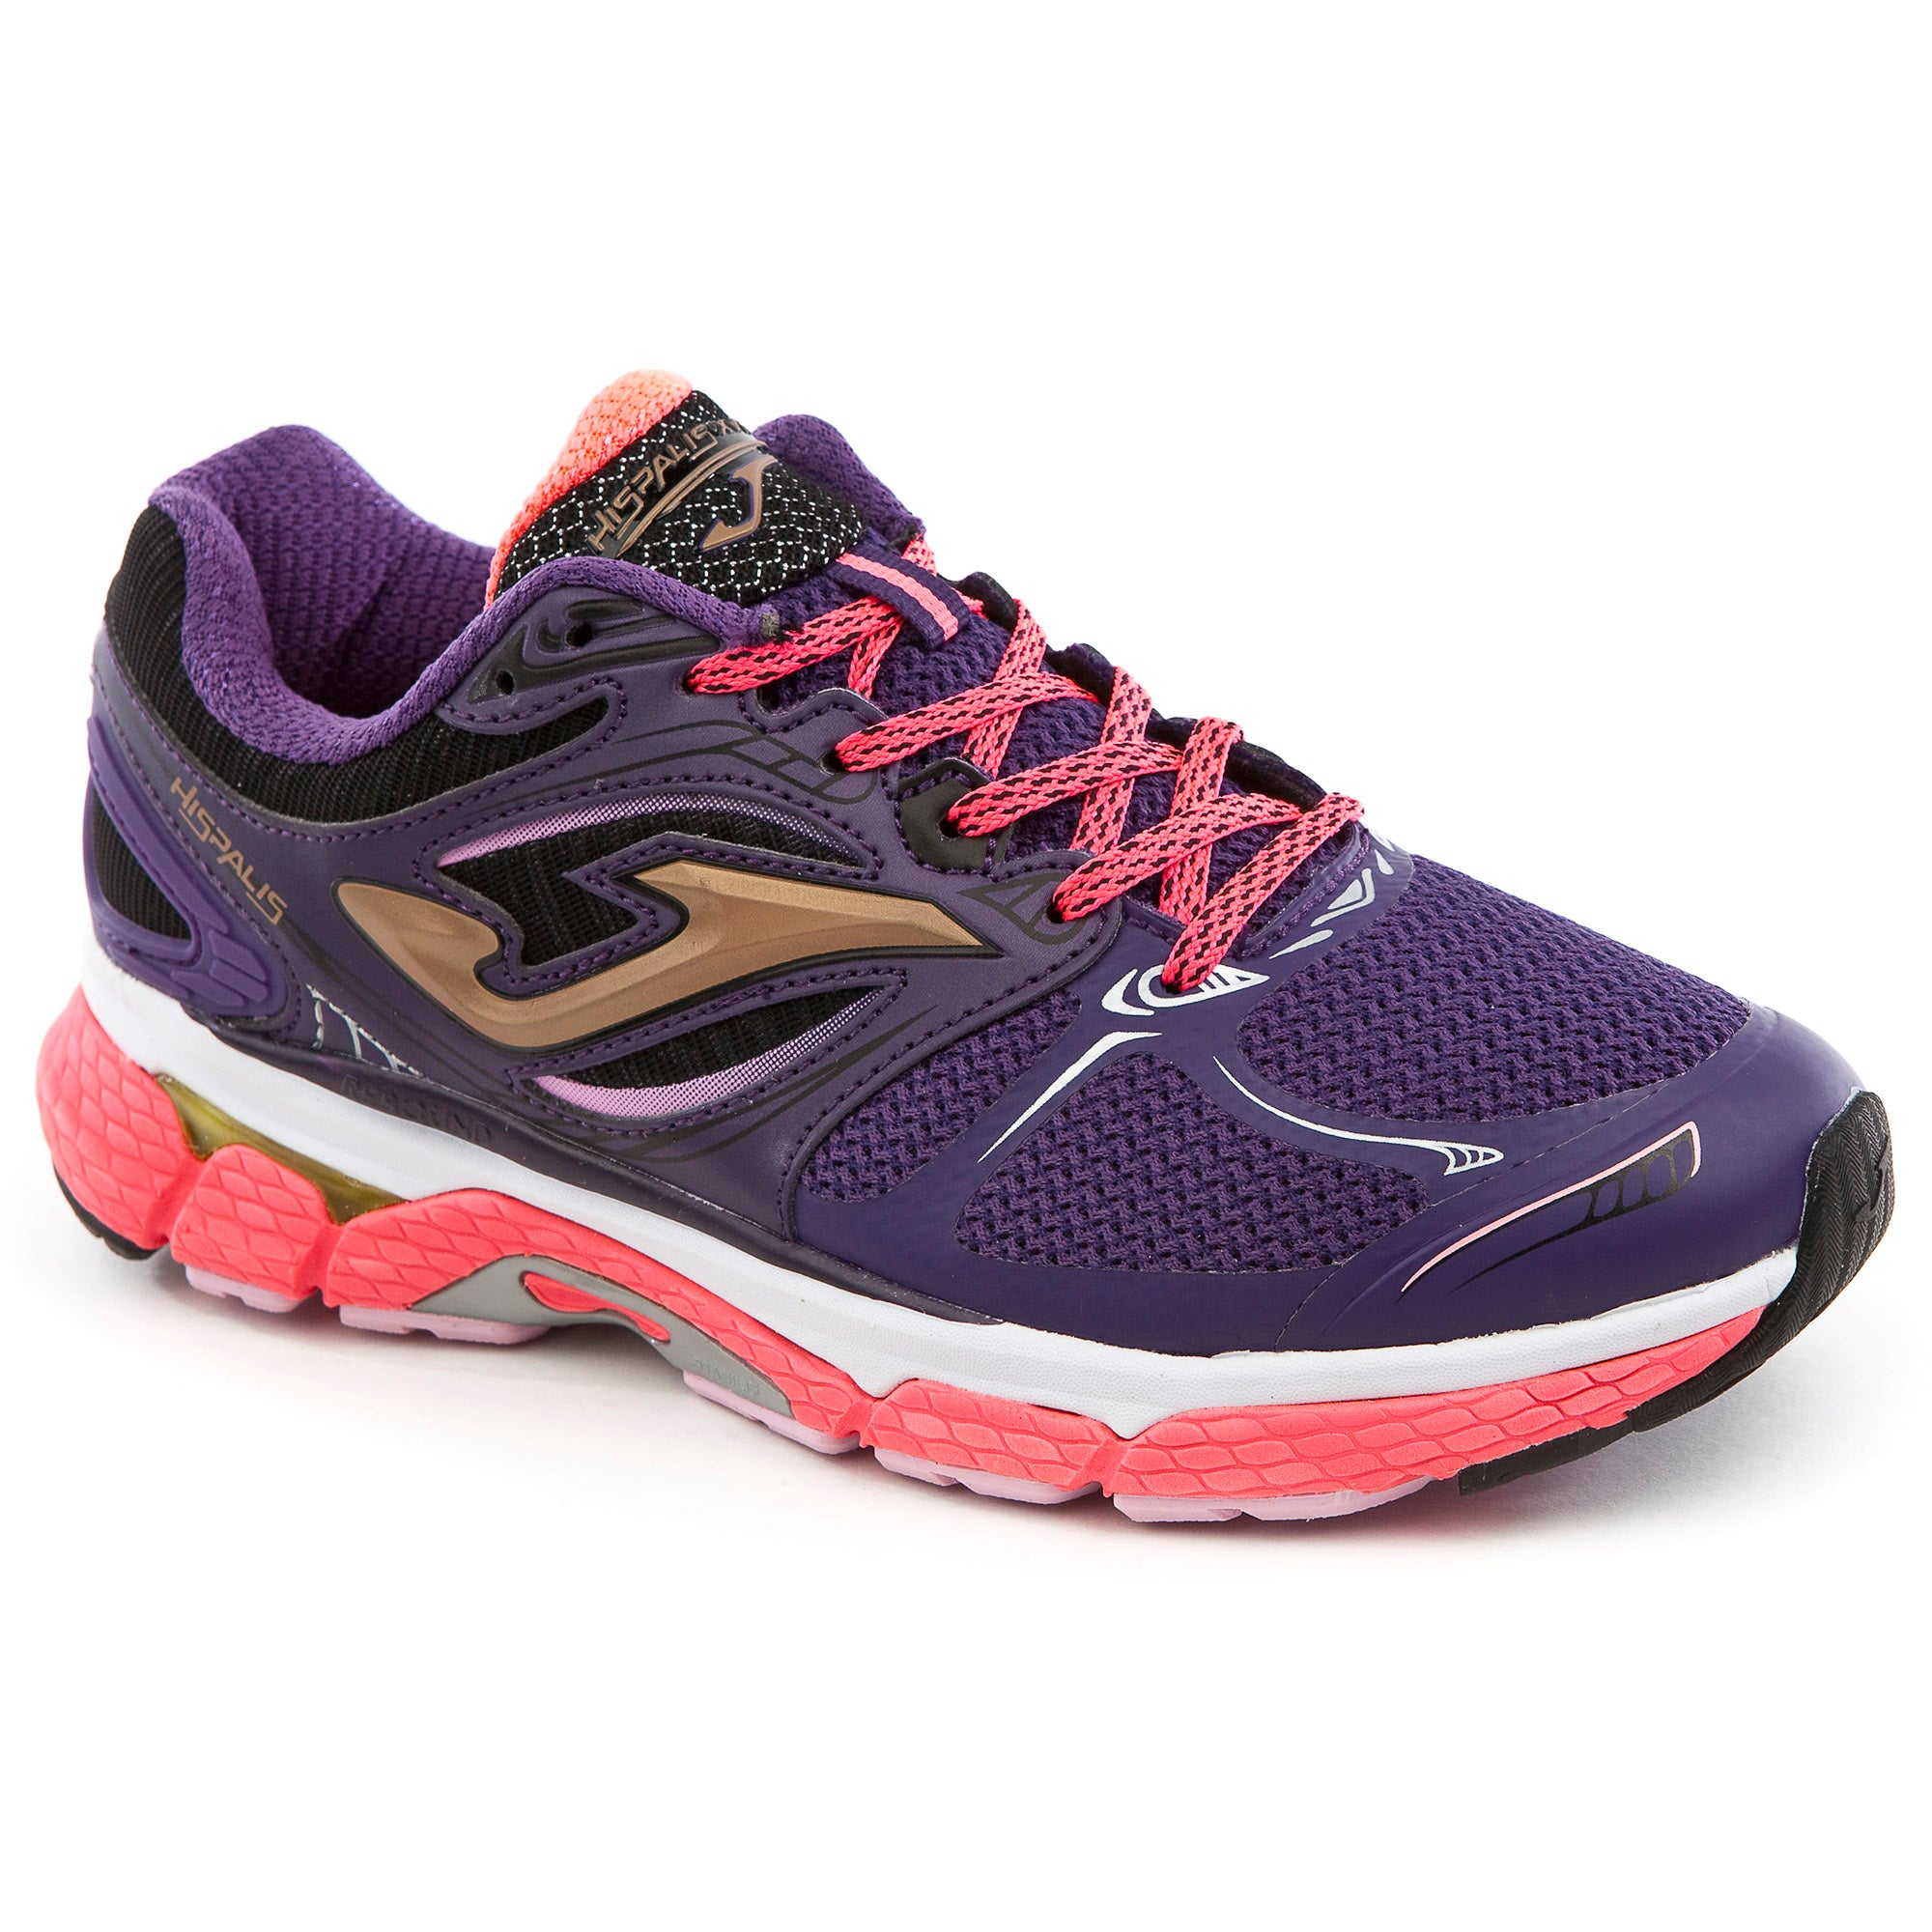 Scarpa Running R.Hispalis Lady. 819 Purple